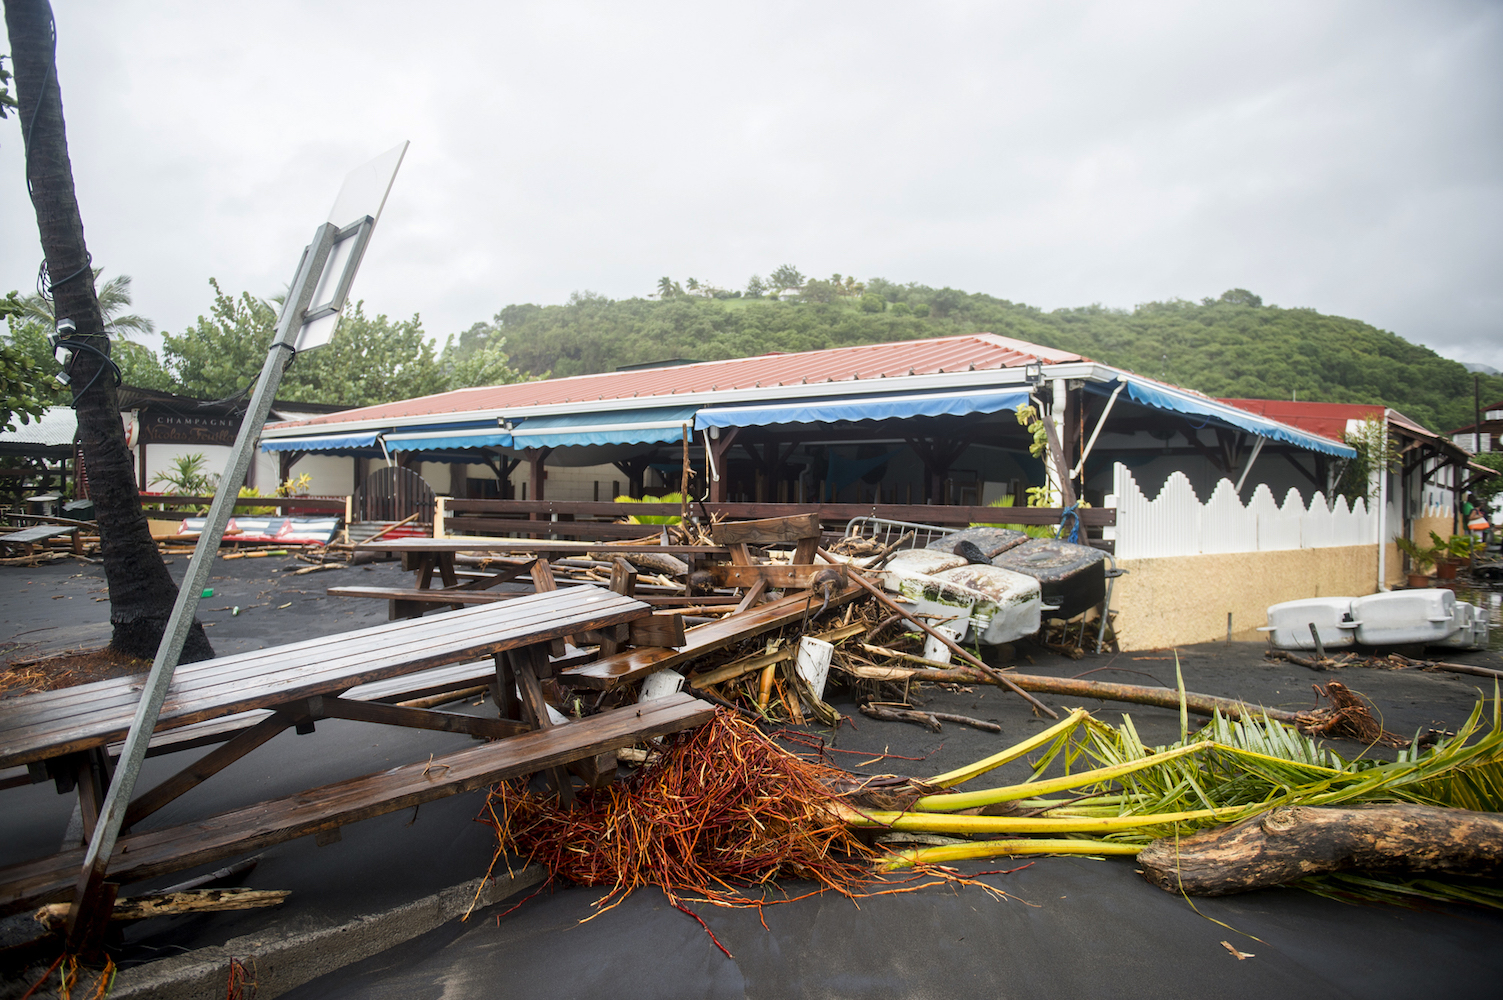 "<div class=""meta image-caption""><div class=""origin-logo origin-image wtvd""><span>wtvd</span></div><span class=""caption-text"">A picture shows damages at a restaurant in Le Carbet, on the French Caribbean island of Martinique, after it was hit by Hurricane Maria, on September 19, 2017. (LIONEL CHAMOISEAU/AFP/Getty)</span></div>"